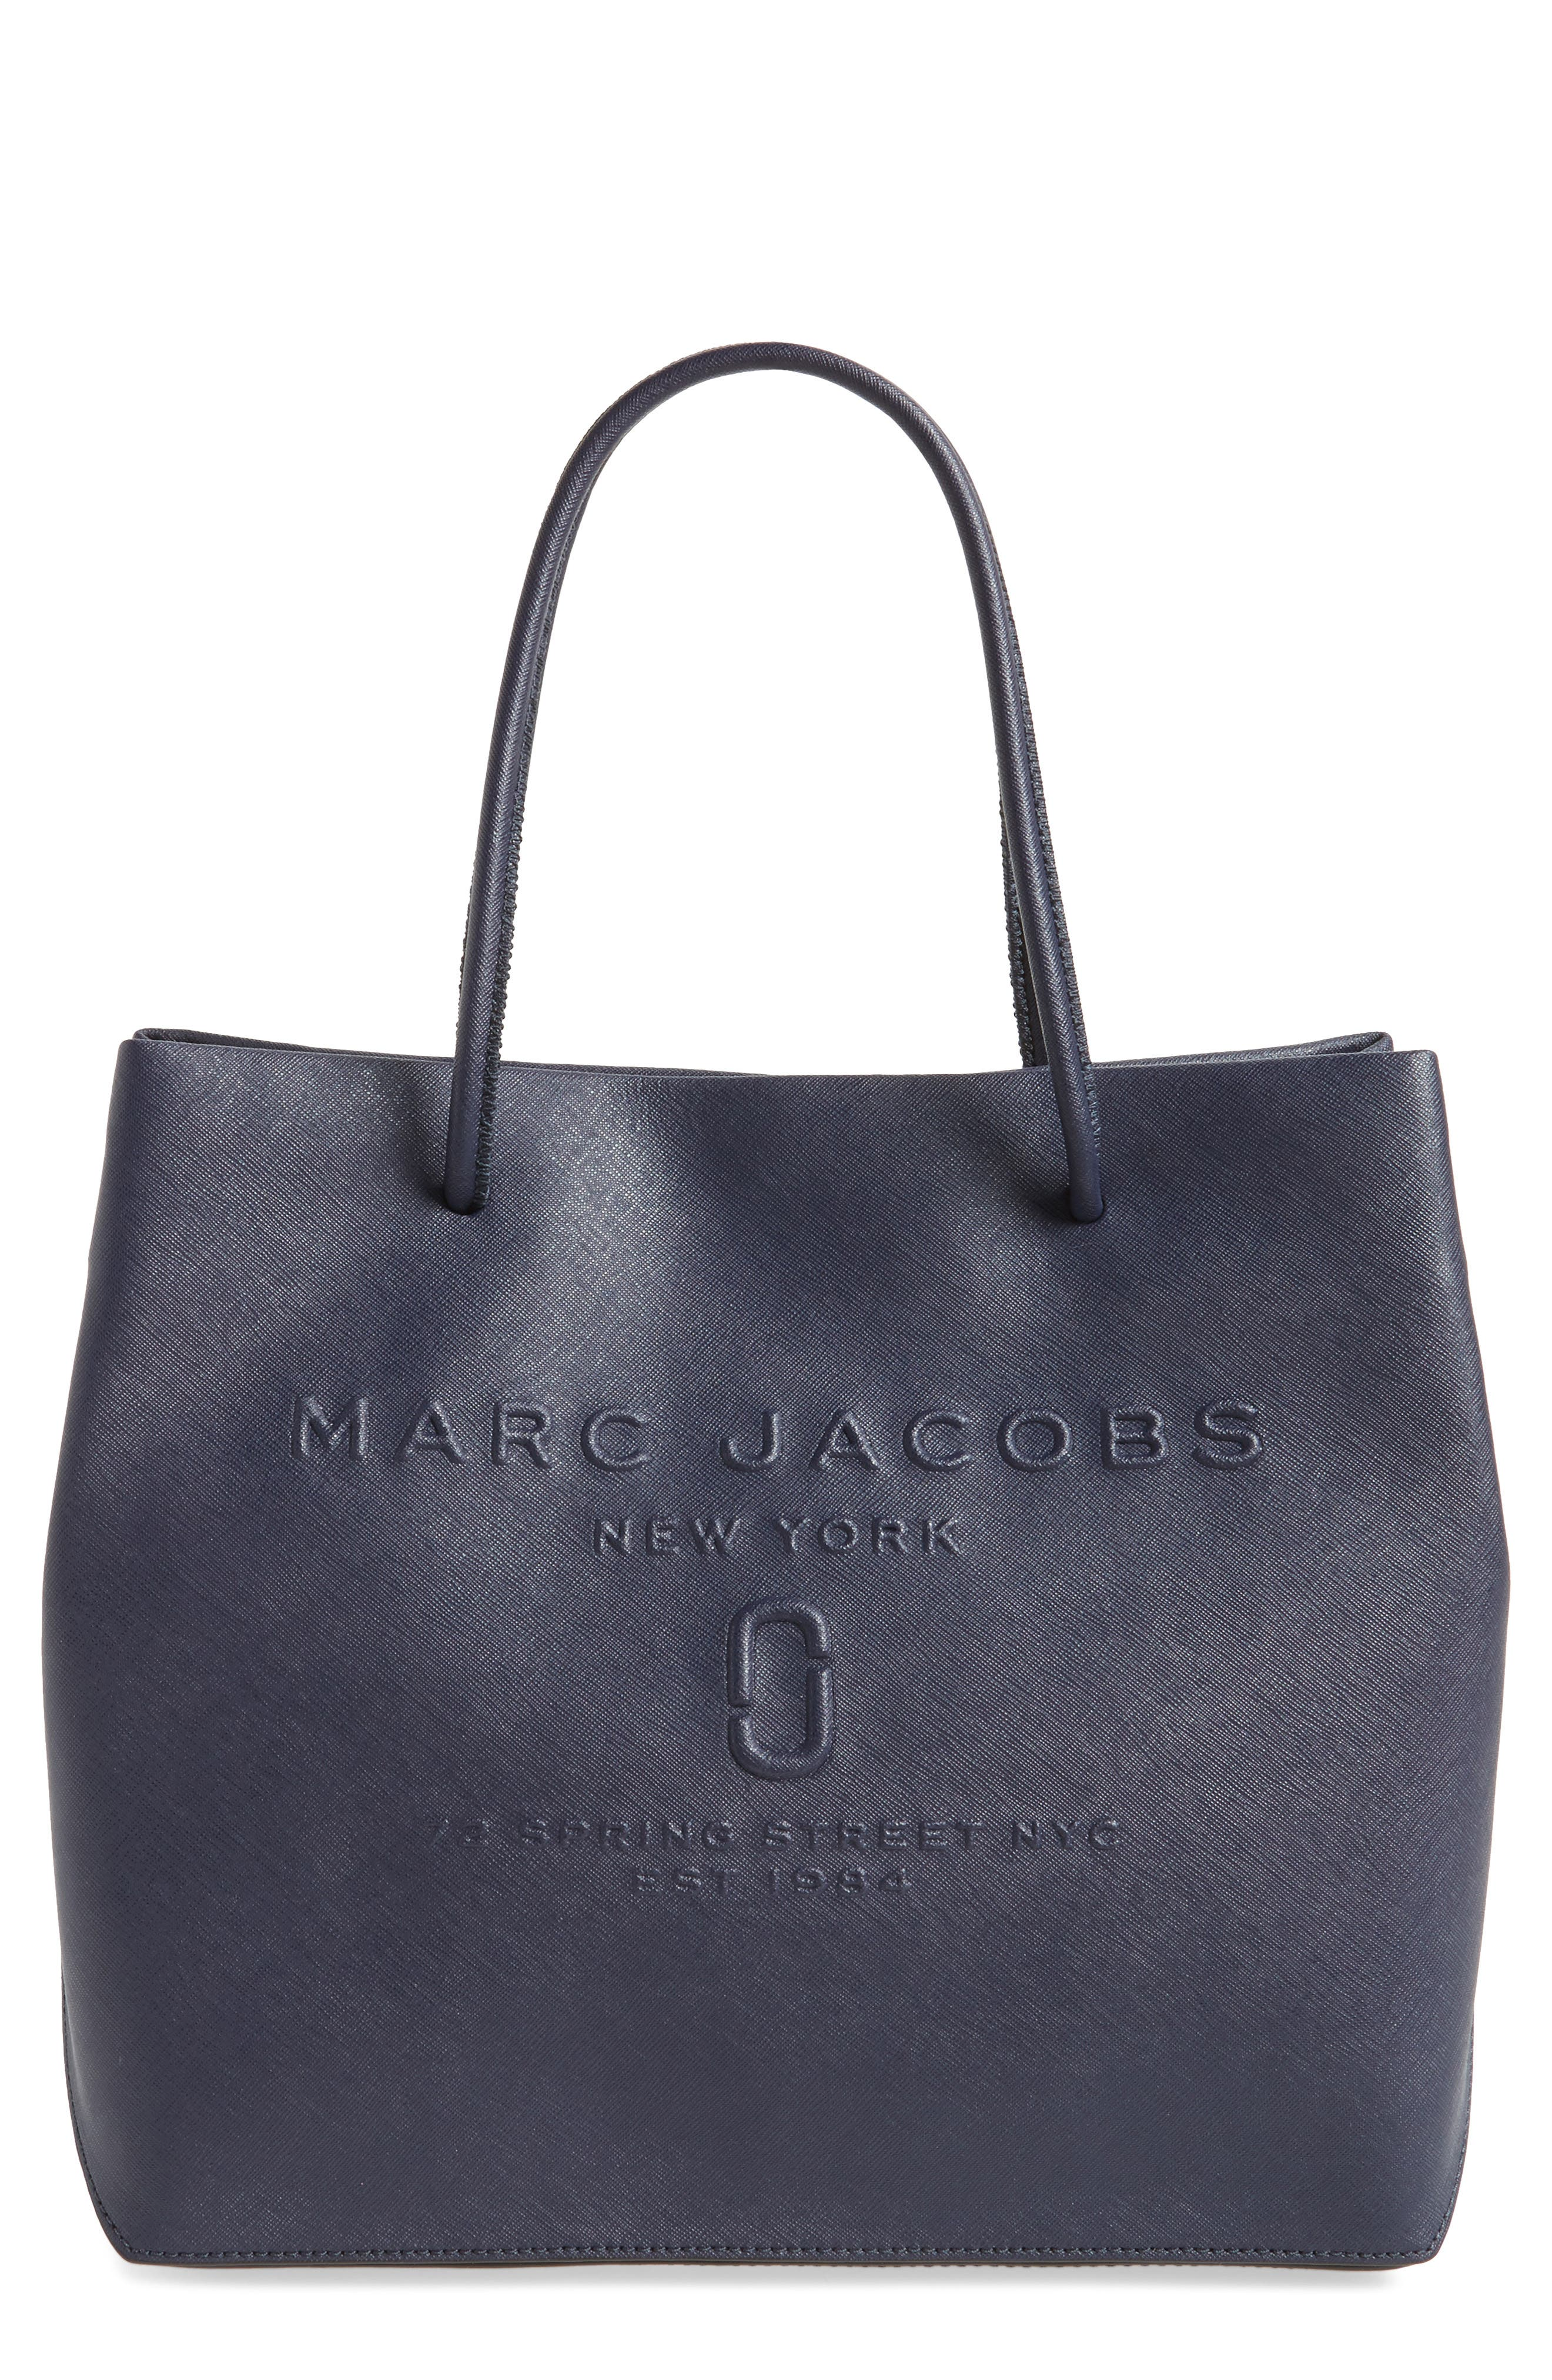 MARC JACOBS Logo Leather Shopper